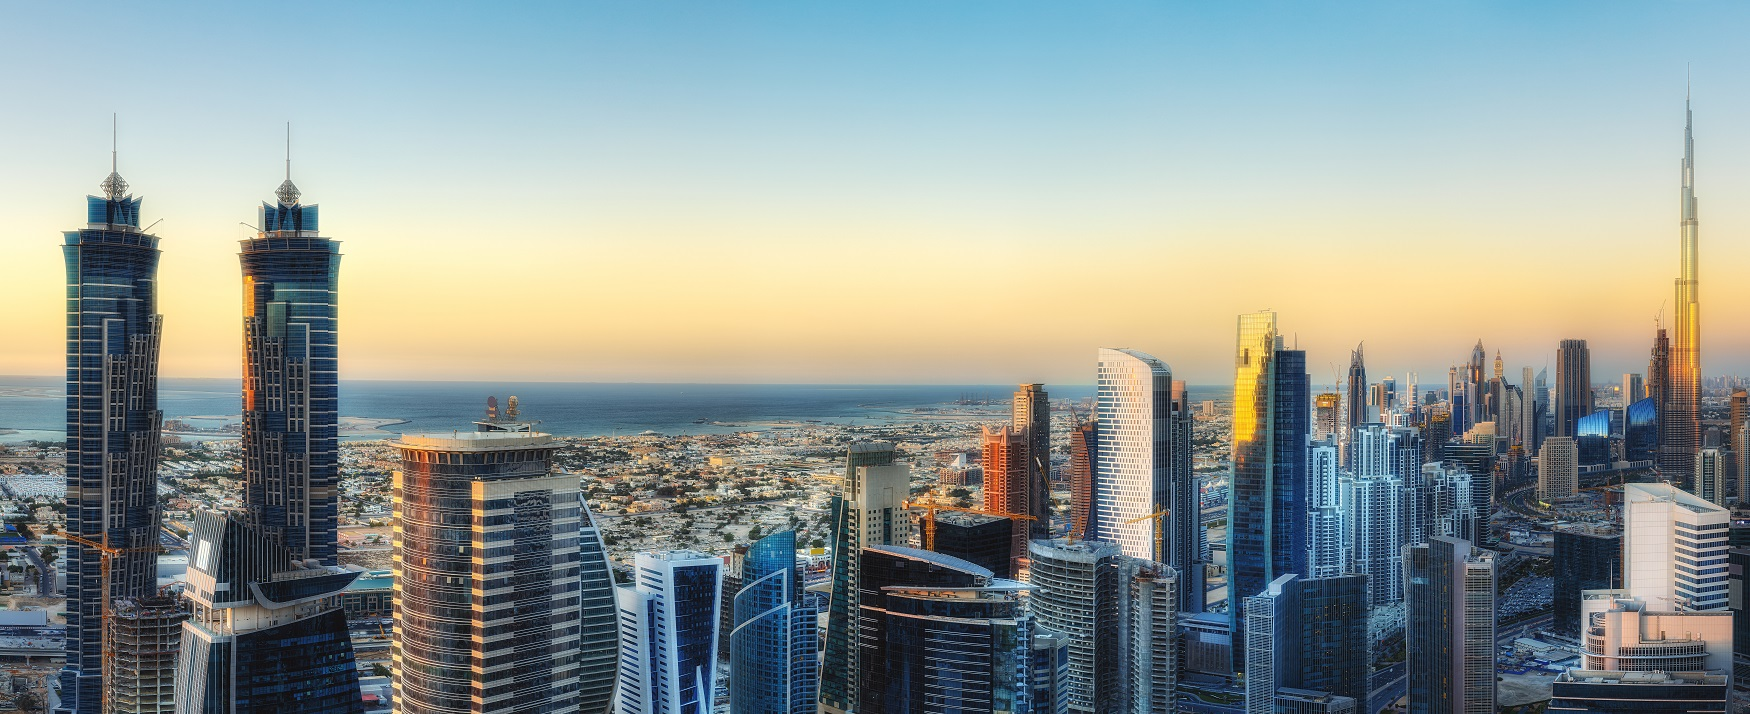 Warm and glowing view of Dubai with the sunset, skyscrapers skyline and sea.